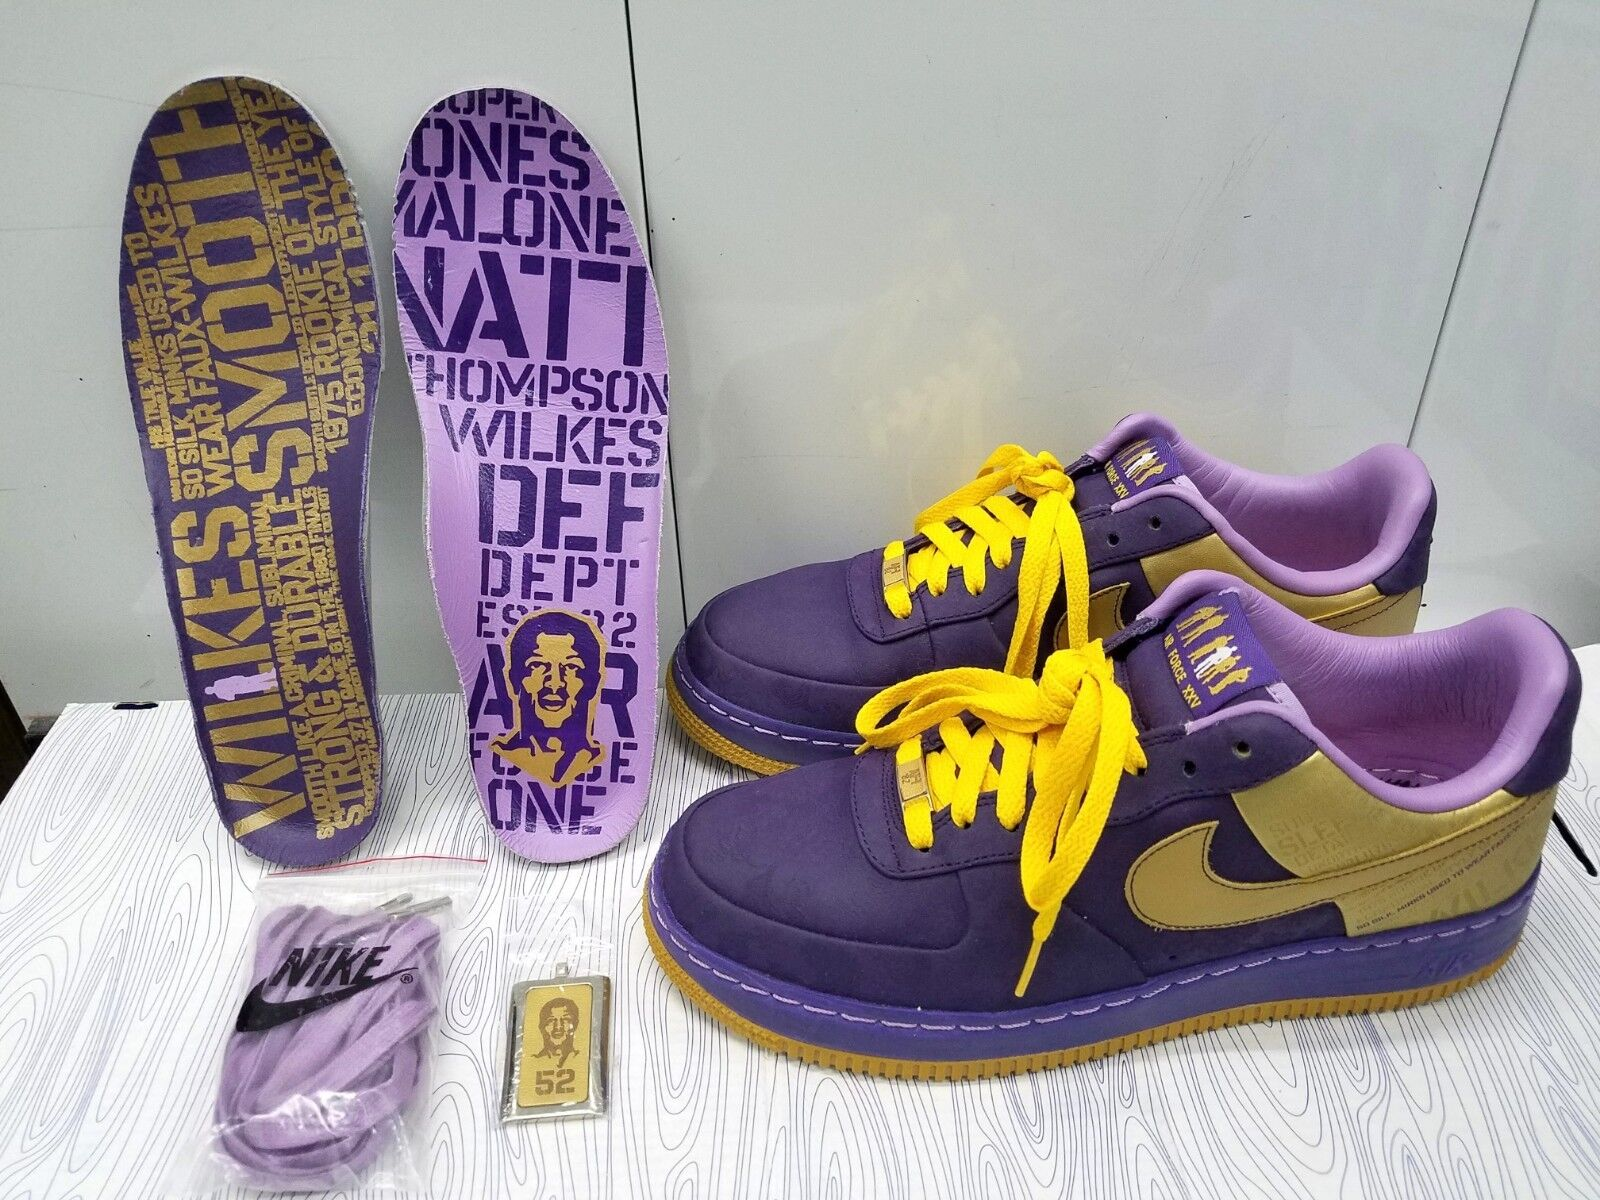 NIKE AIR FORCE ONE LOW PREMIUM L.A. LAKERS MENS SZ 8.5 315088-571 2008 VERY RARE